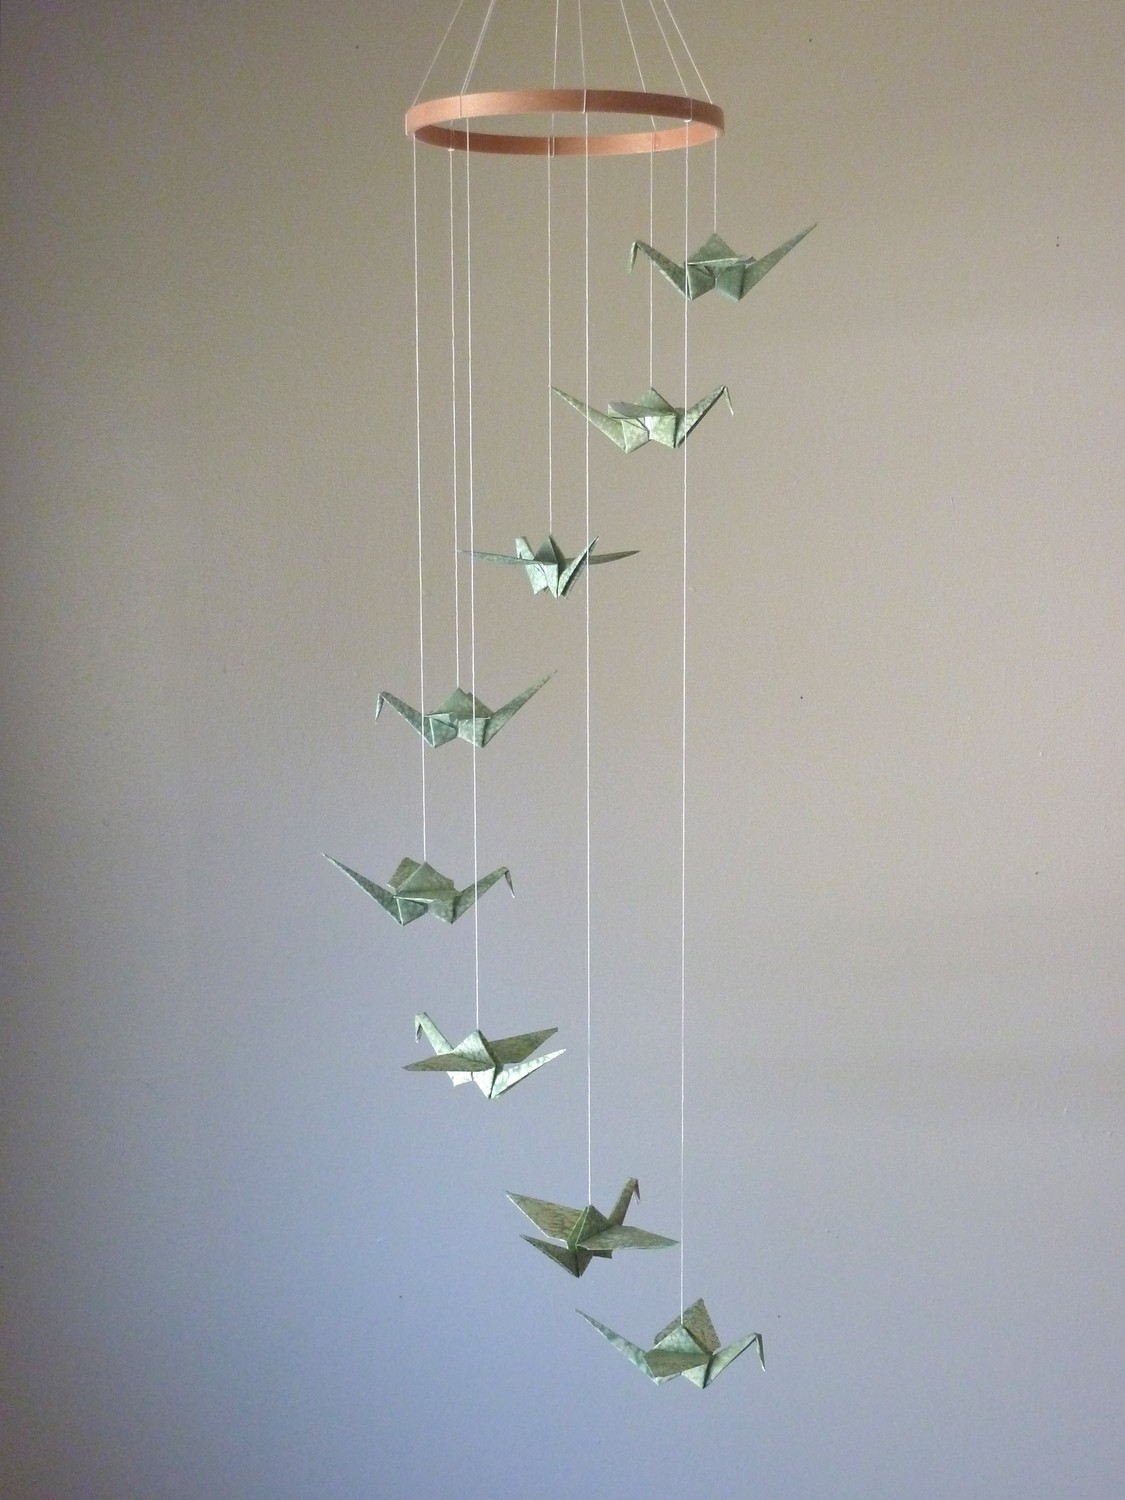 Origami Decoration Bedroom Children Decor Origami Crane Mobile Ba Mobile Art Mobile